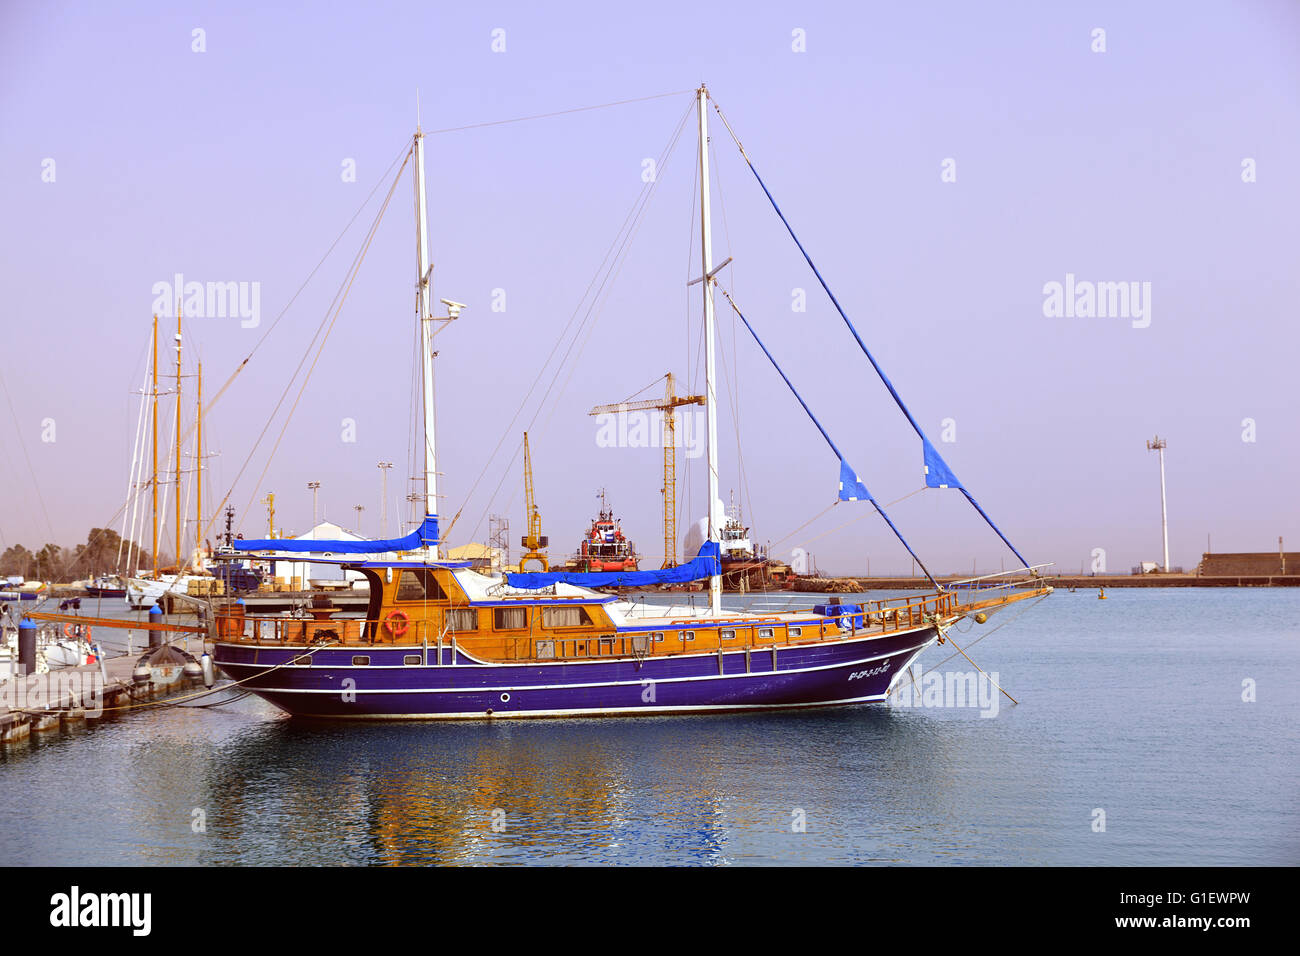 Wooden hull yacht moored in Burriana Harbour, Spain Stock Photo